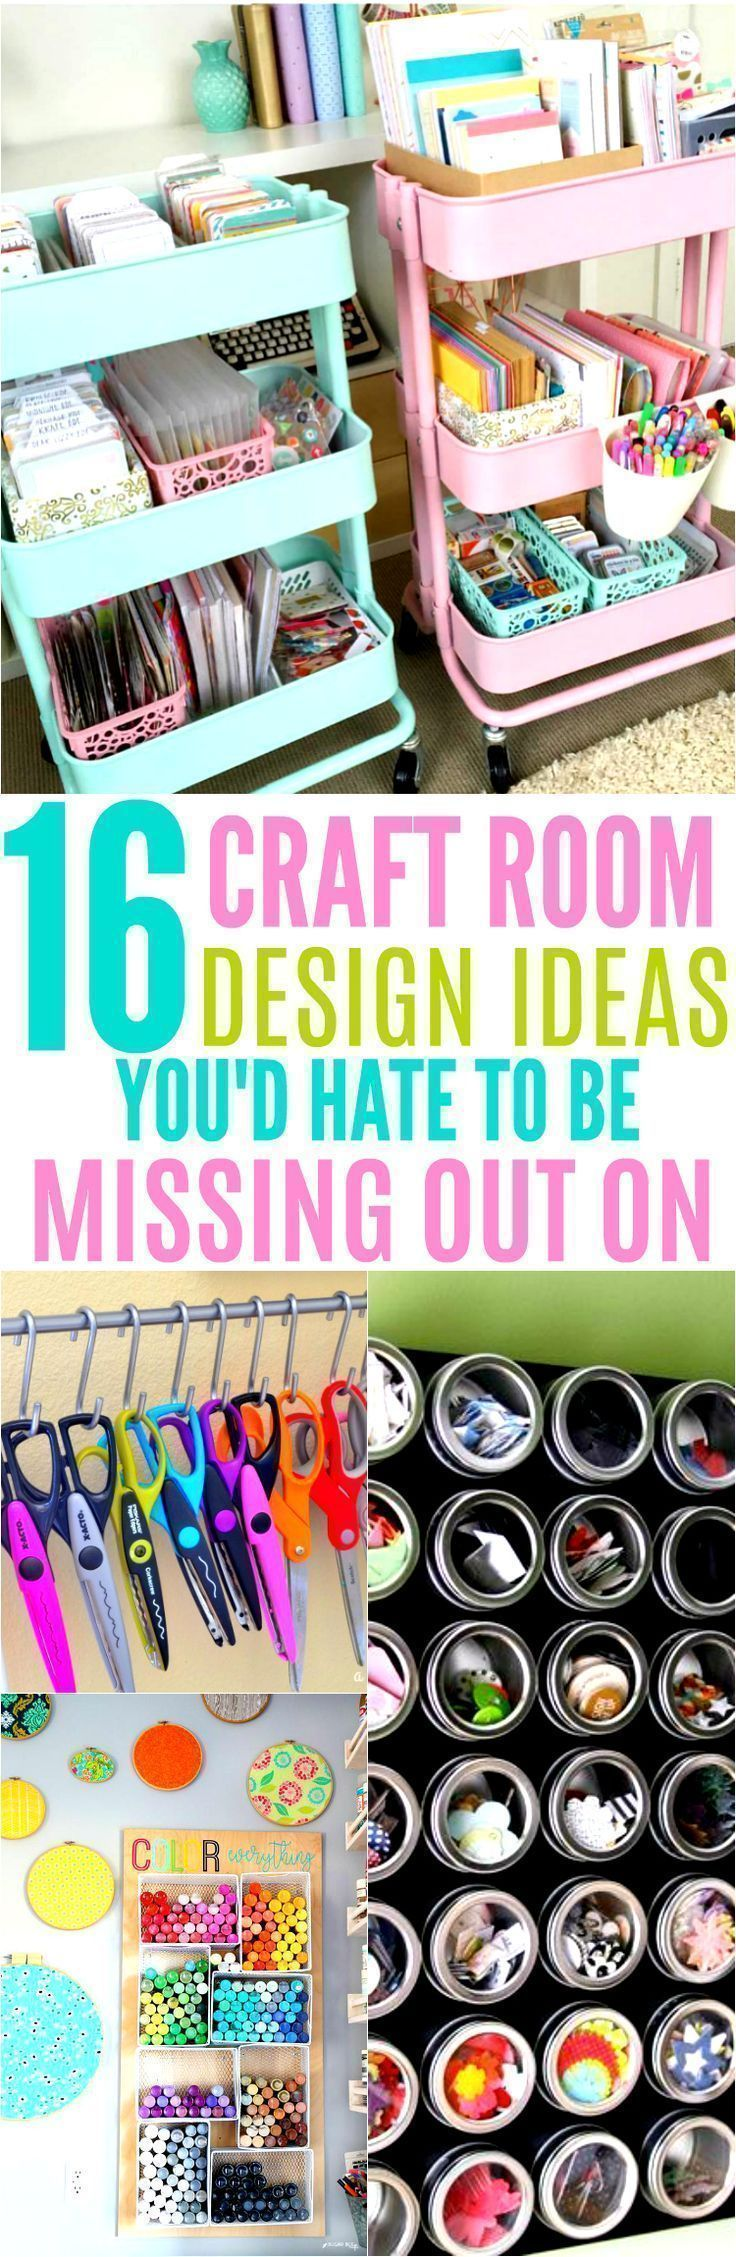 These 16 Craft Room Organization Ideas Are Simply AMAZING! If you are looking to fix up your craft room in the near future, here are some awesome inspirational bloggers to check out!